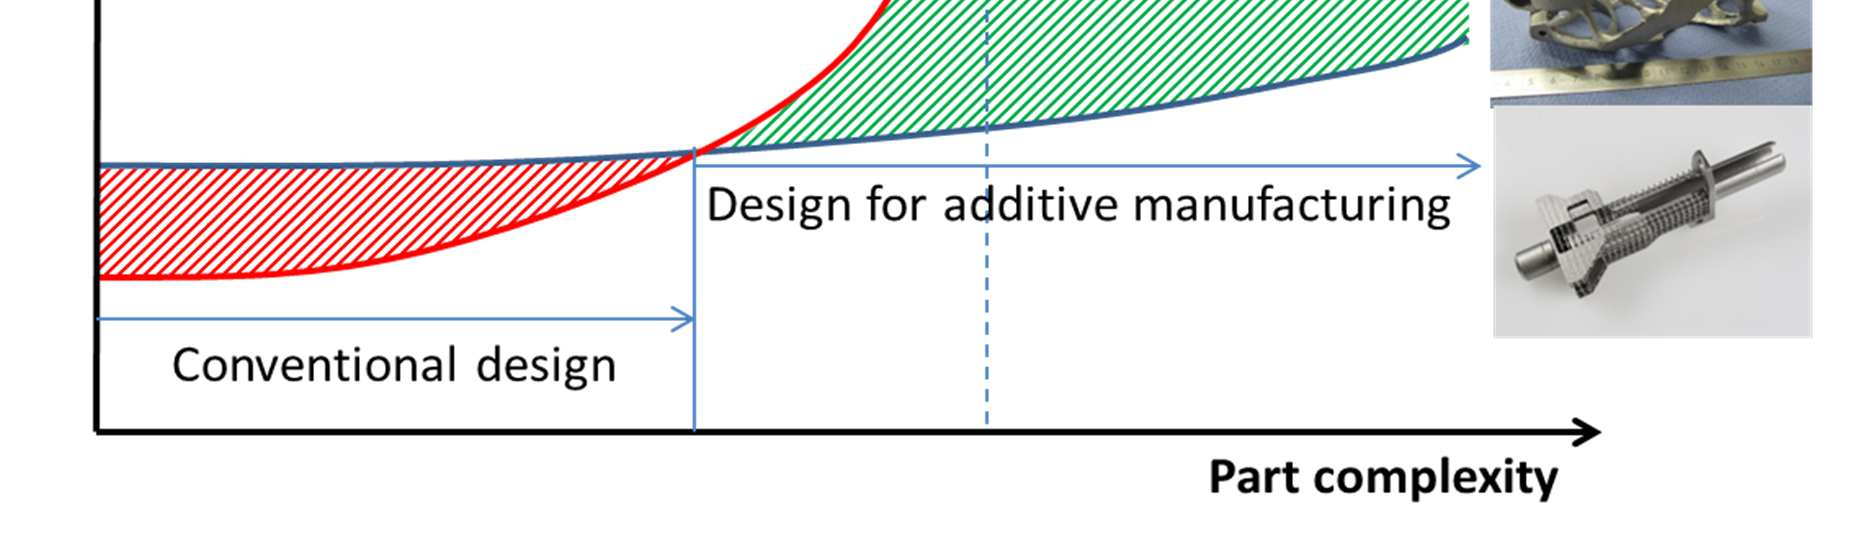 Complexity for free Redesign for Additive Manufacturing Nearly unlimited Scope of Design new